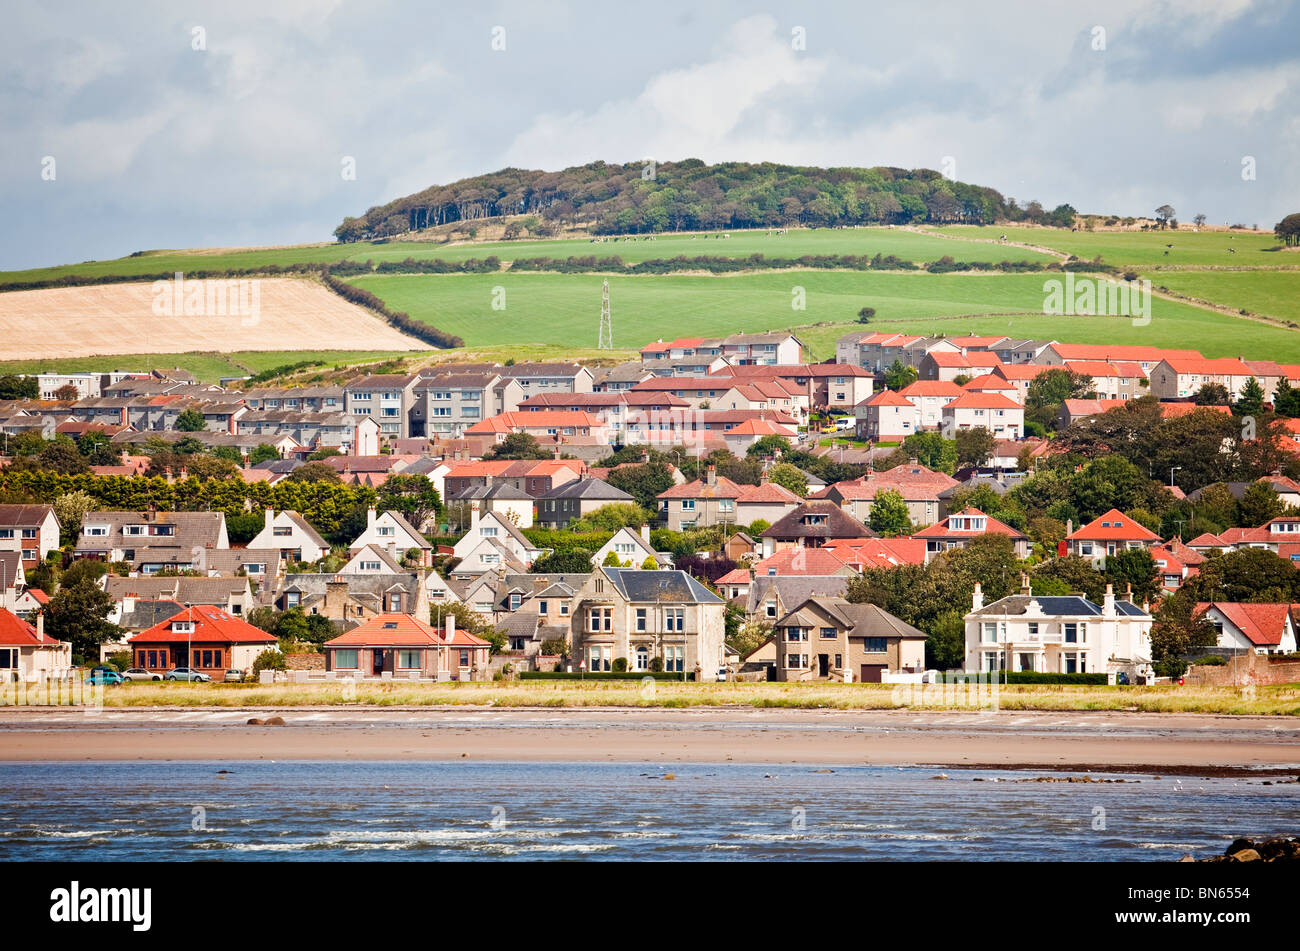 Part of the North Ayrshire coastal town of Ardrossan, on the banks of the Firth of Clyde. - Stock Image